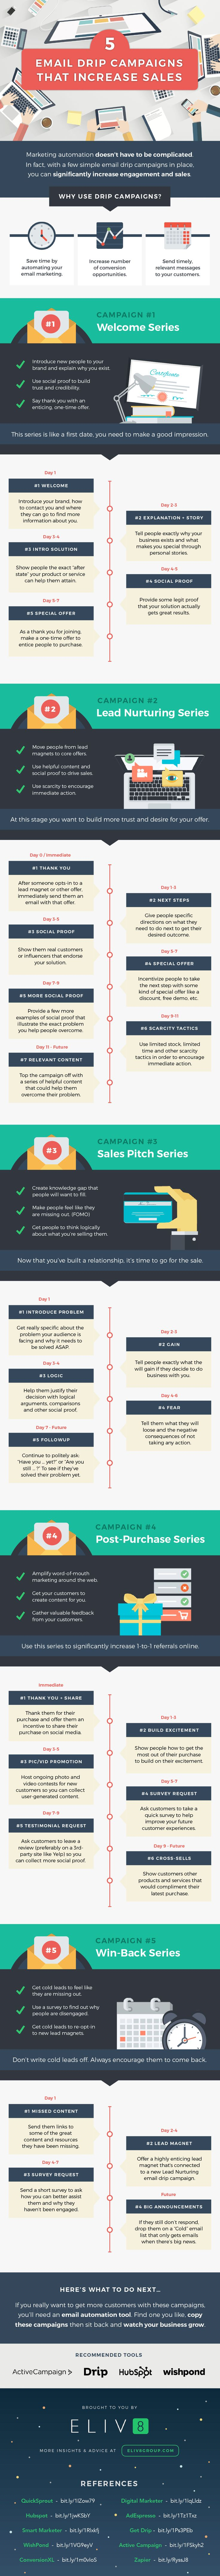 Drip Marketing: How to Run A Drip Campaign [Infographic]